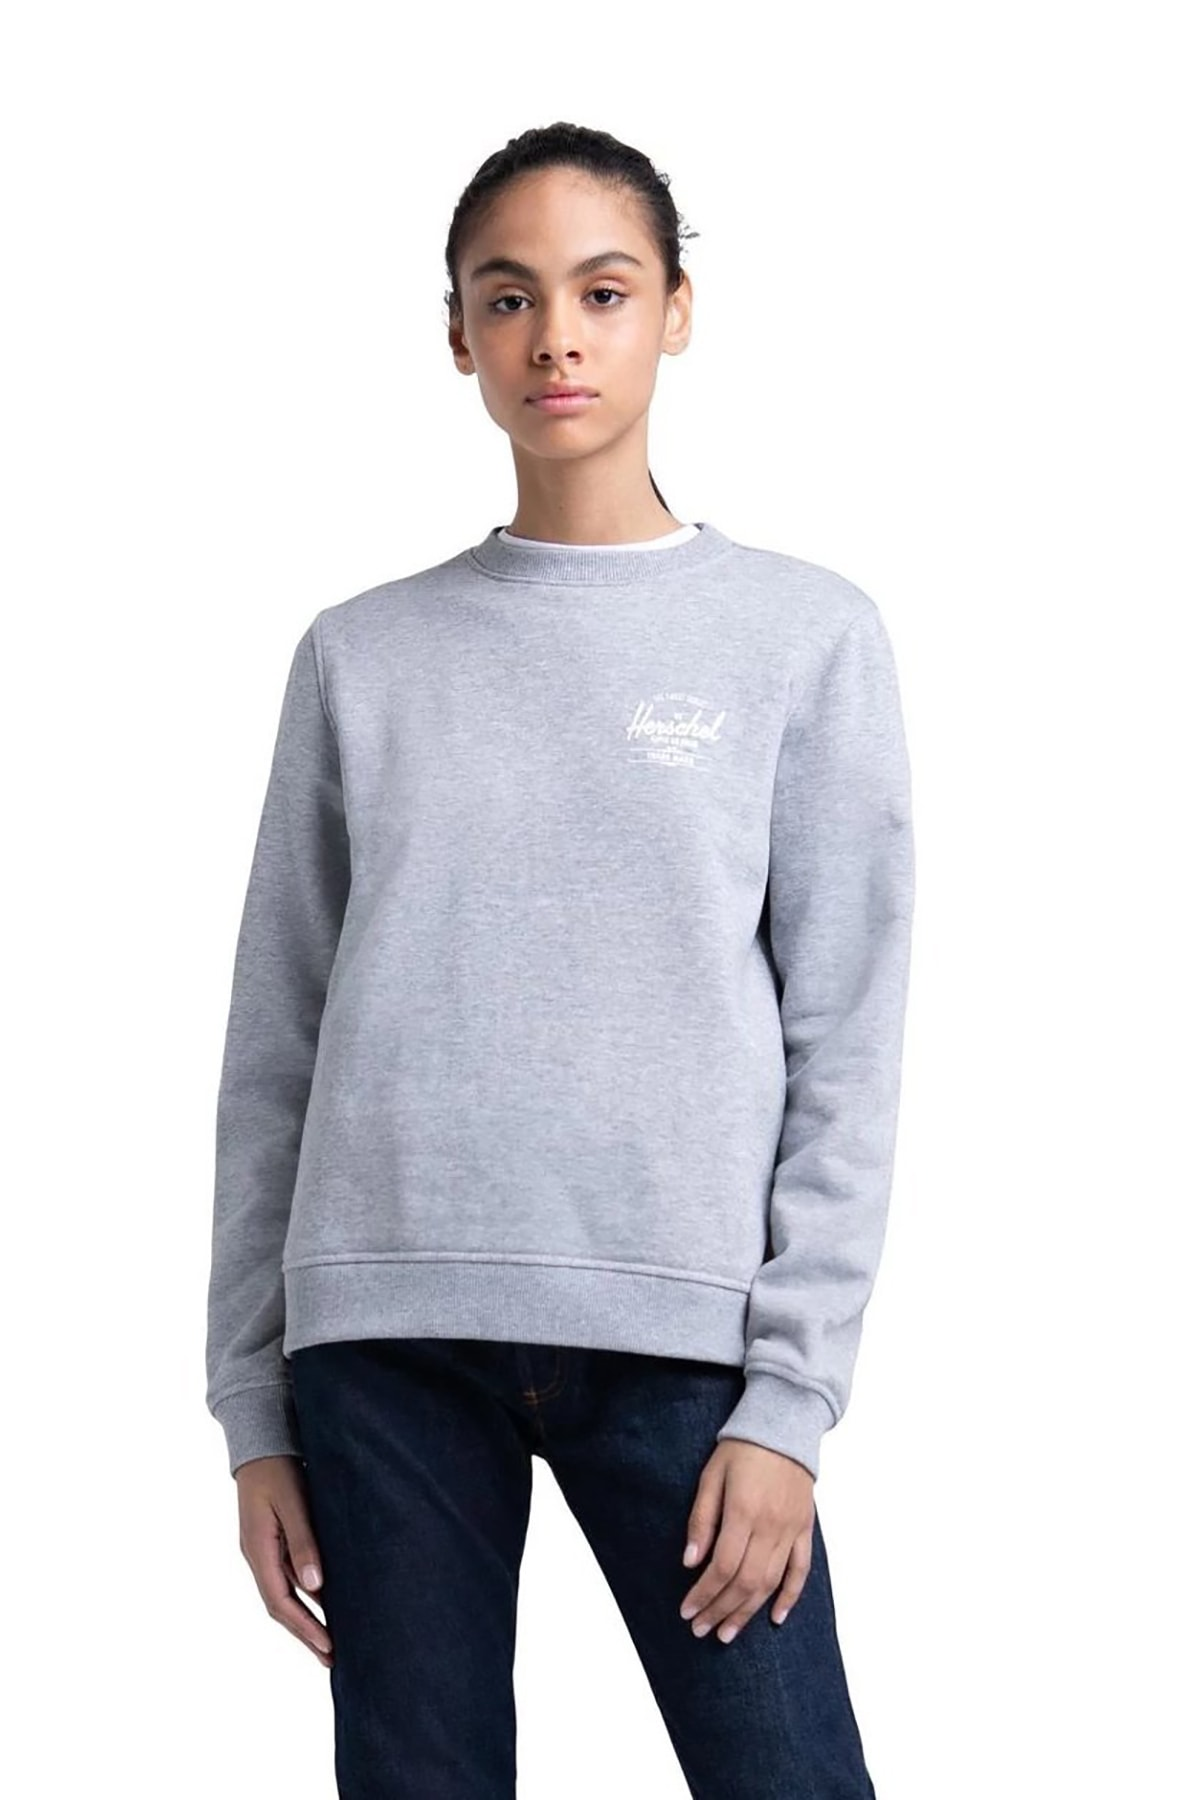 Herschel Herschel Supply - Kadın Sweatshirt - Womens Classic Logo Crewneck Grey/White